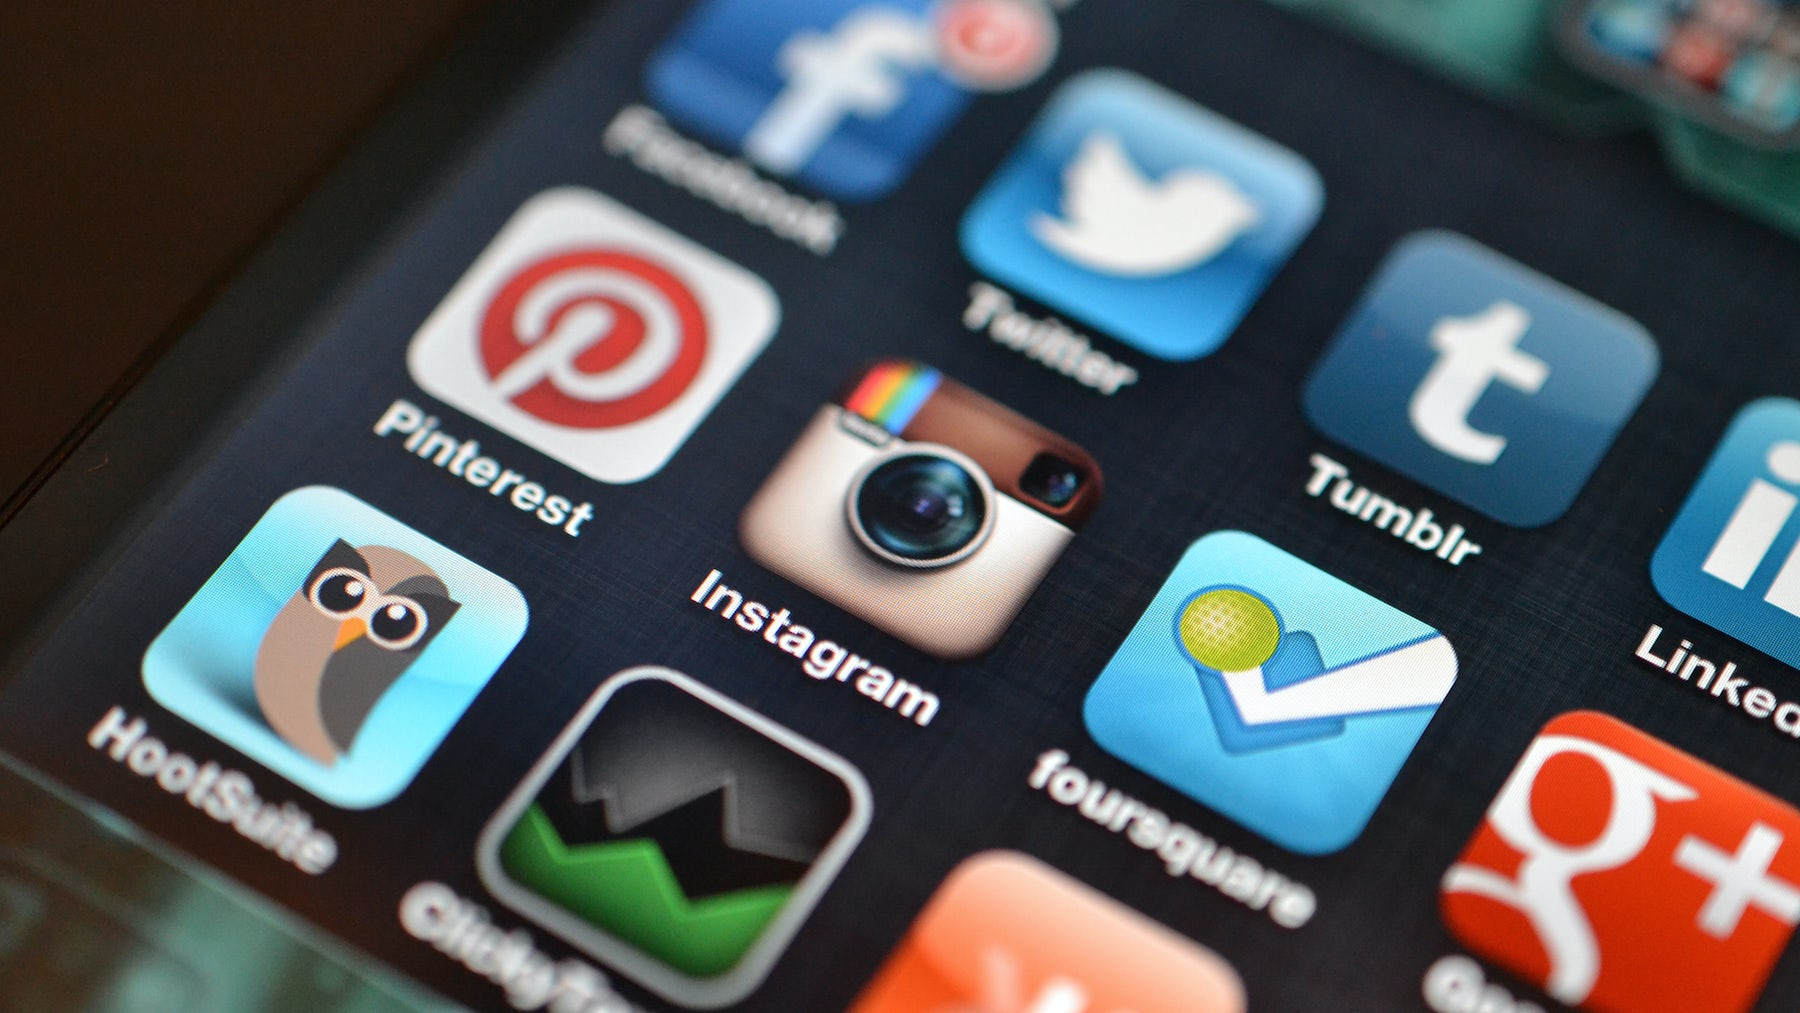 Instagram and other apps | Source: Flickr